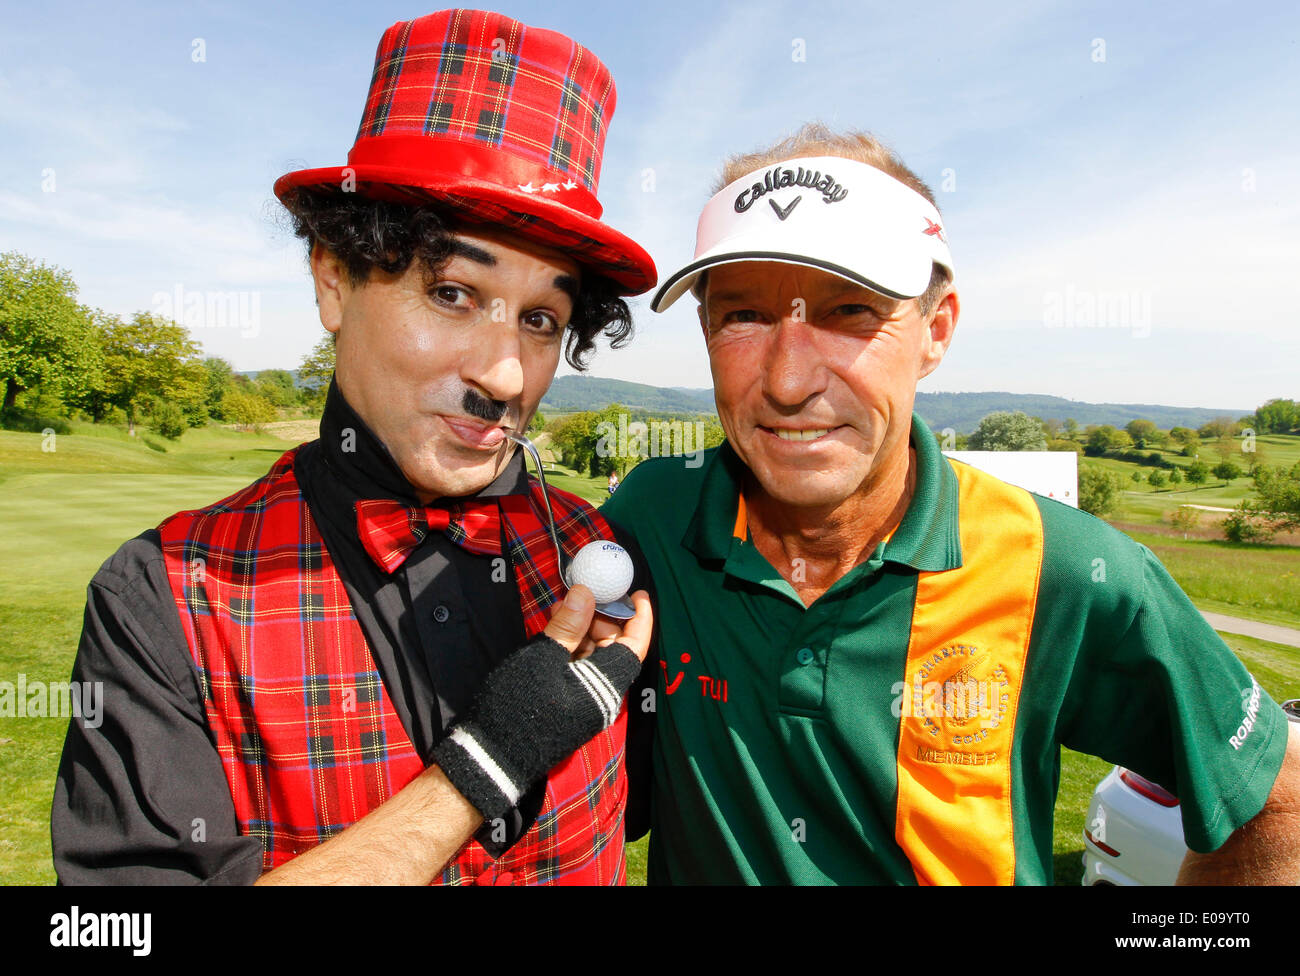 Herbolzheim, Germany - May 5, 2014: Eagles Charity Golf Cup and Gala at Golfclub Breisgau and Europa Park, Rust with Actor Michael Lesch and Charly Credit:  dpa picture alliance/Alamy Live News - Stock Image